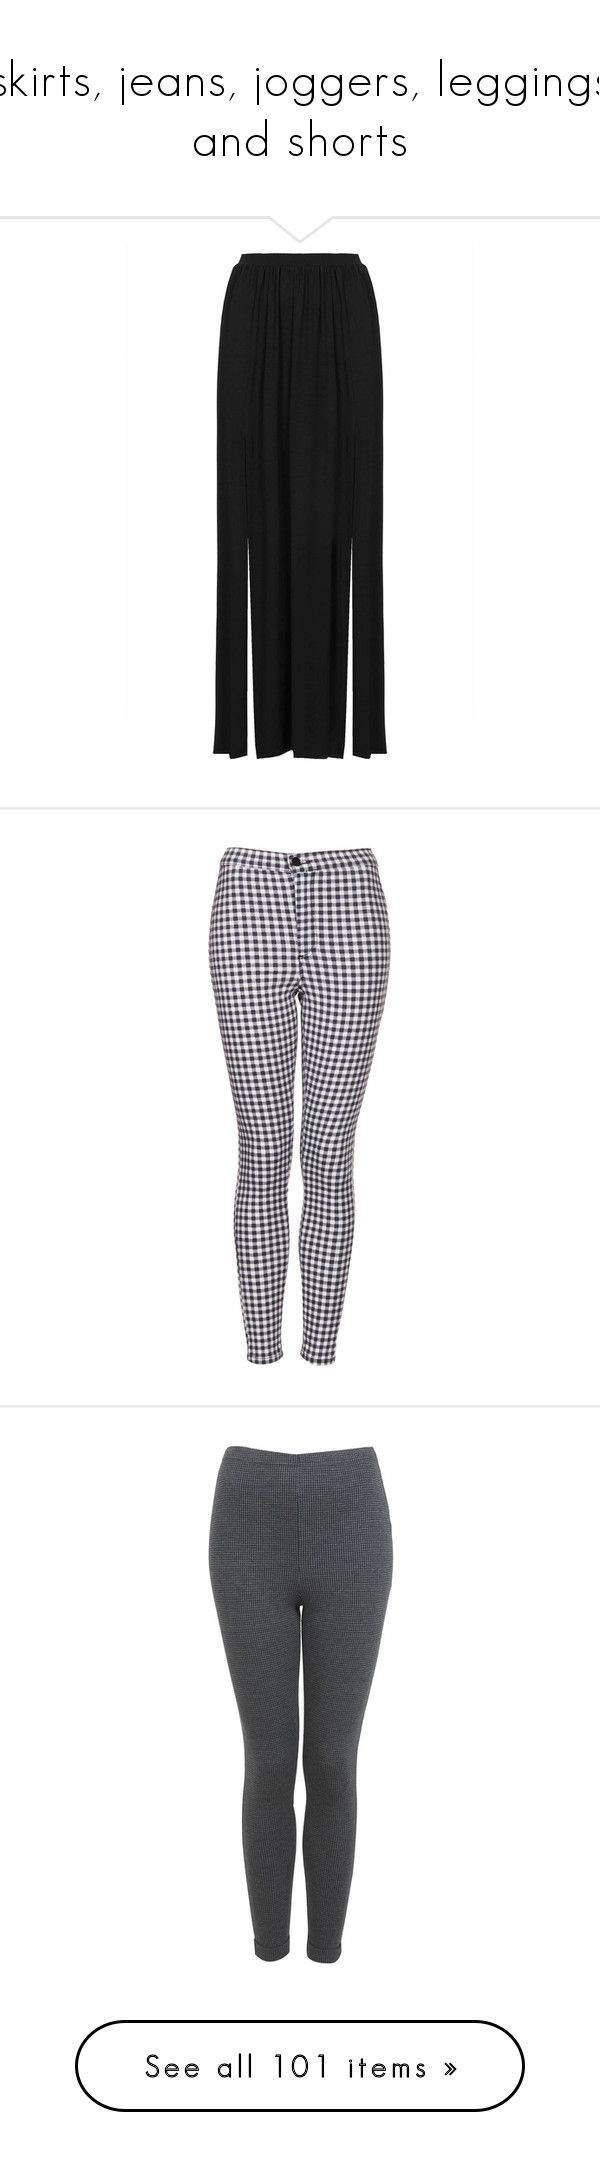 """""""skirts, jeans, joggers, leggings and shorts"""" by sugary-heaven ❤ liked on Polyvore featuring skirts, bottoms, saias, maxi skirts, faldas, black, topshop maxi skirt, jersey skirt, long jersey skirt and elastic waist maxi skirt"""